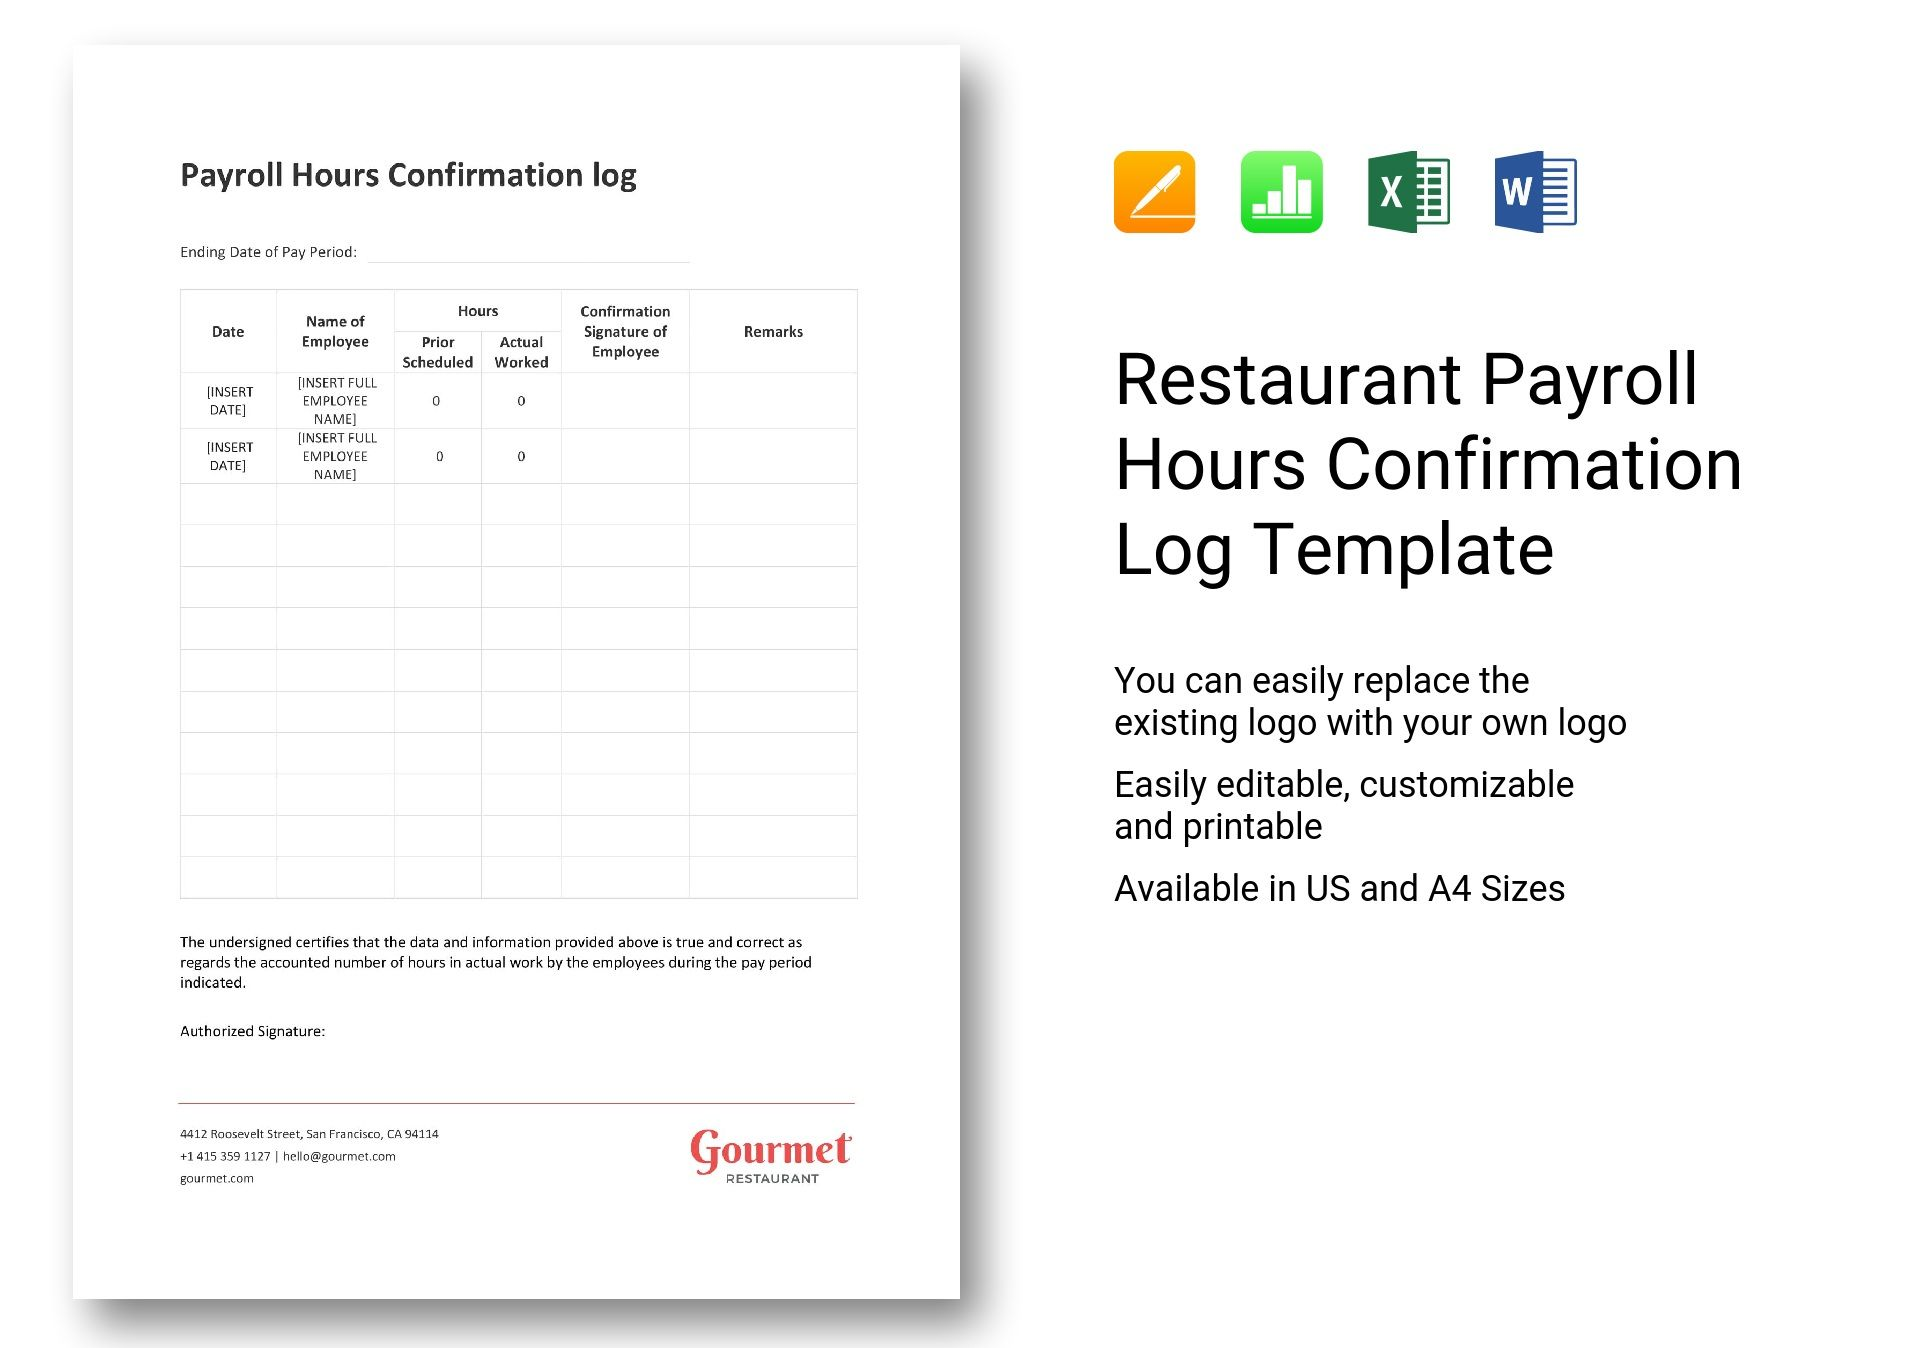 Restaurant Payroll Hours Confirmation Log Template in Word ...